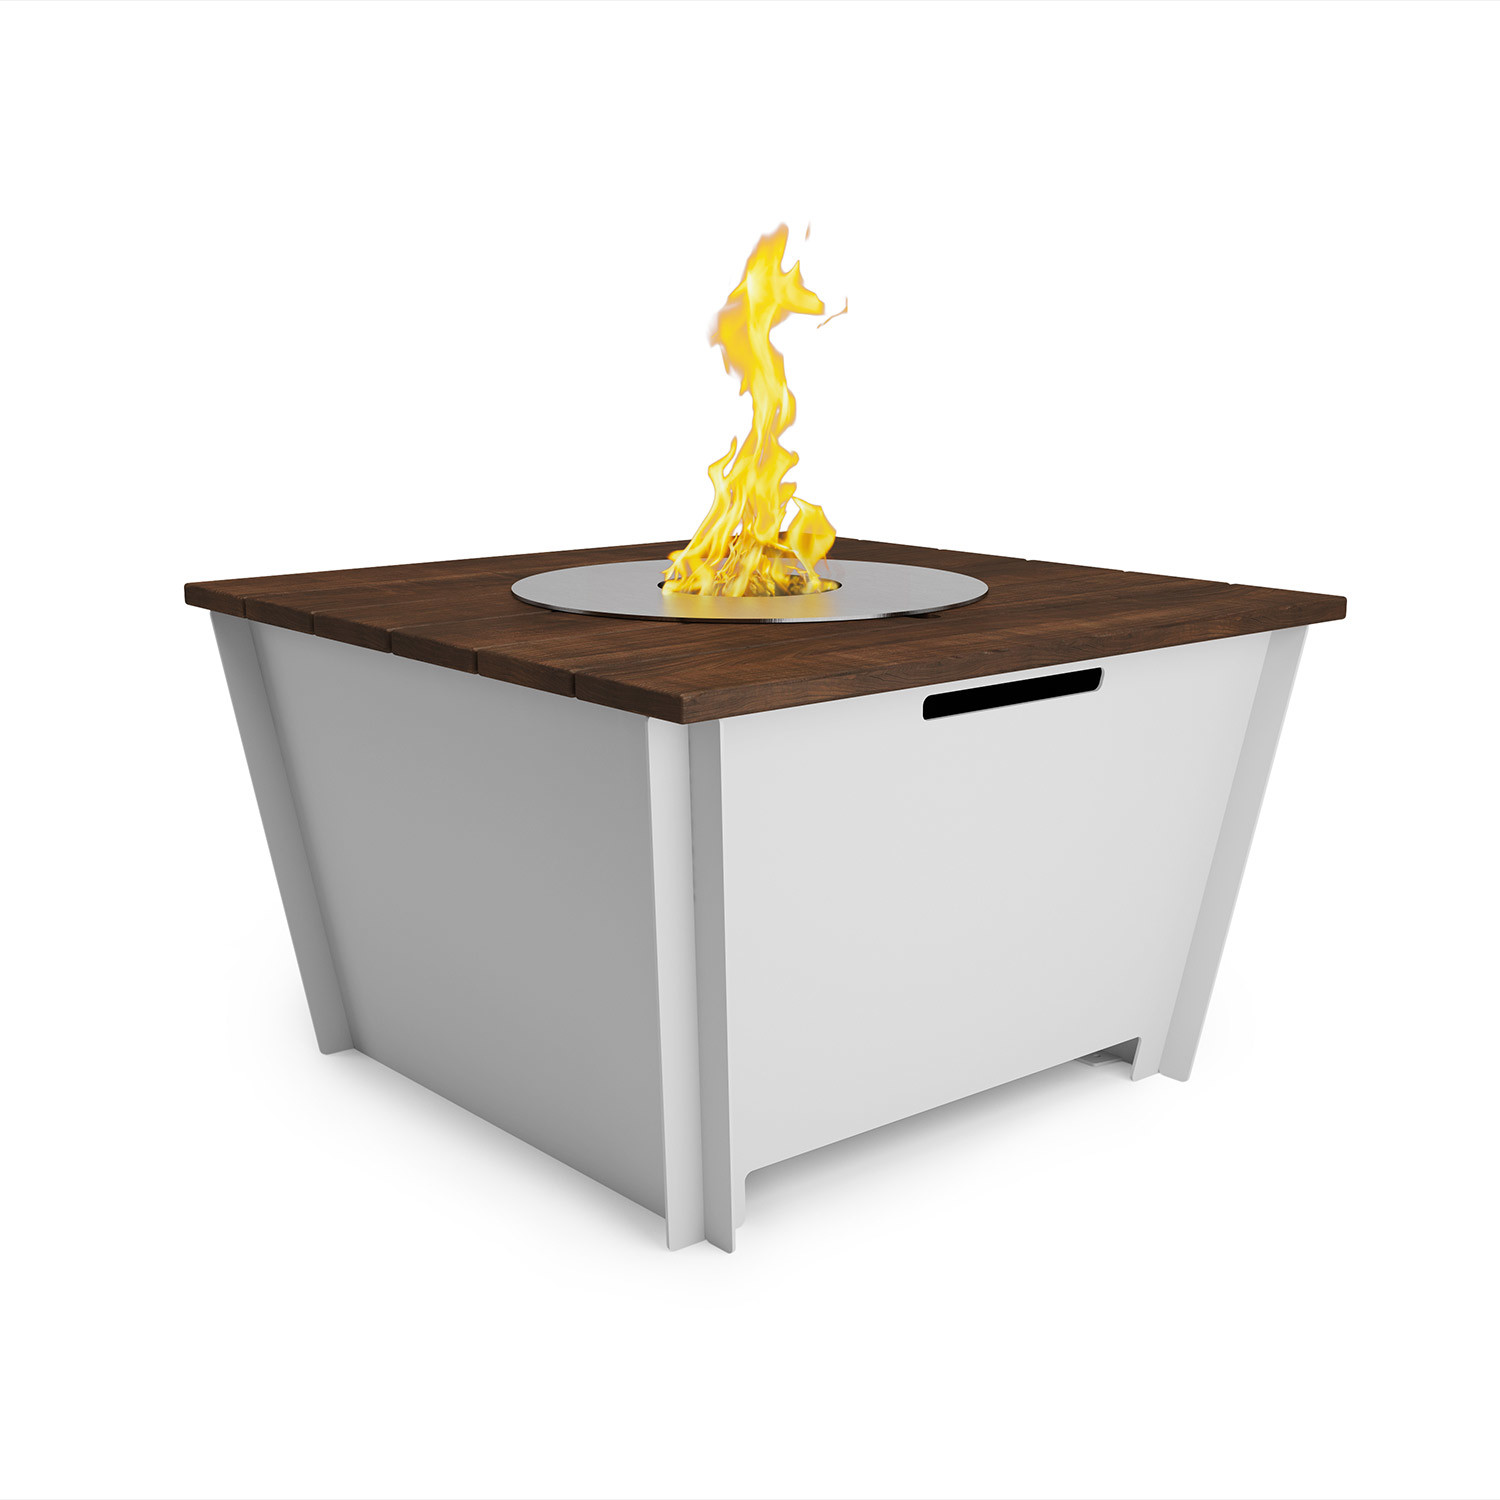 Fire table 27 dark brown groovebox touch of modern for Concreteworks fire table